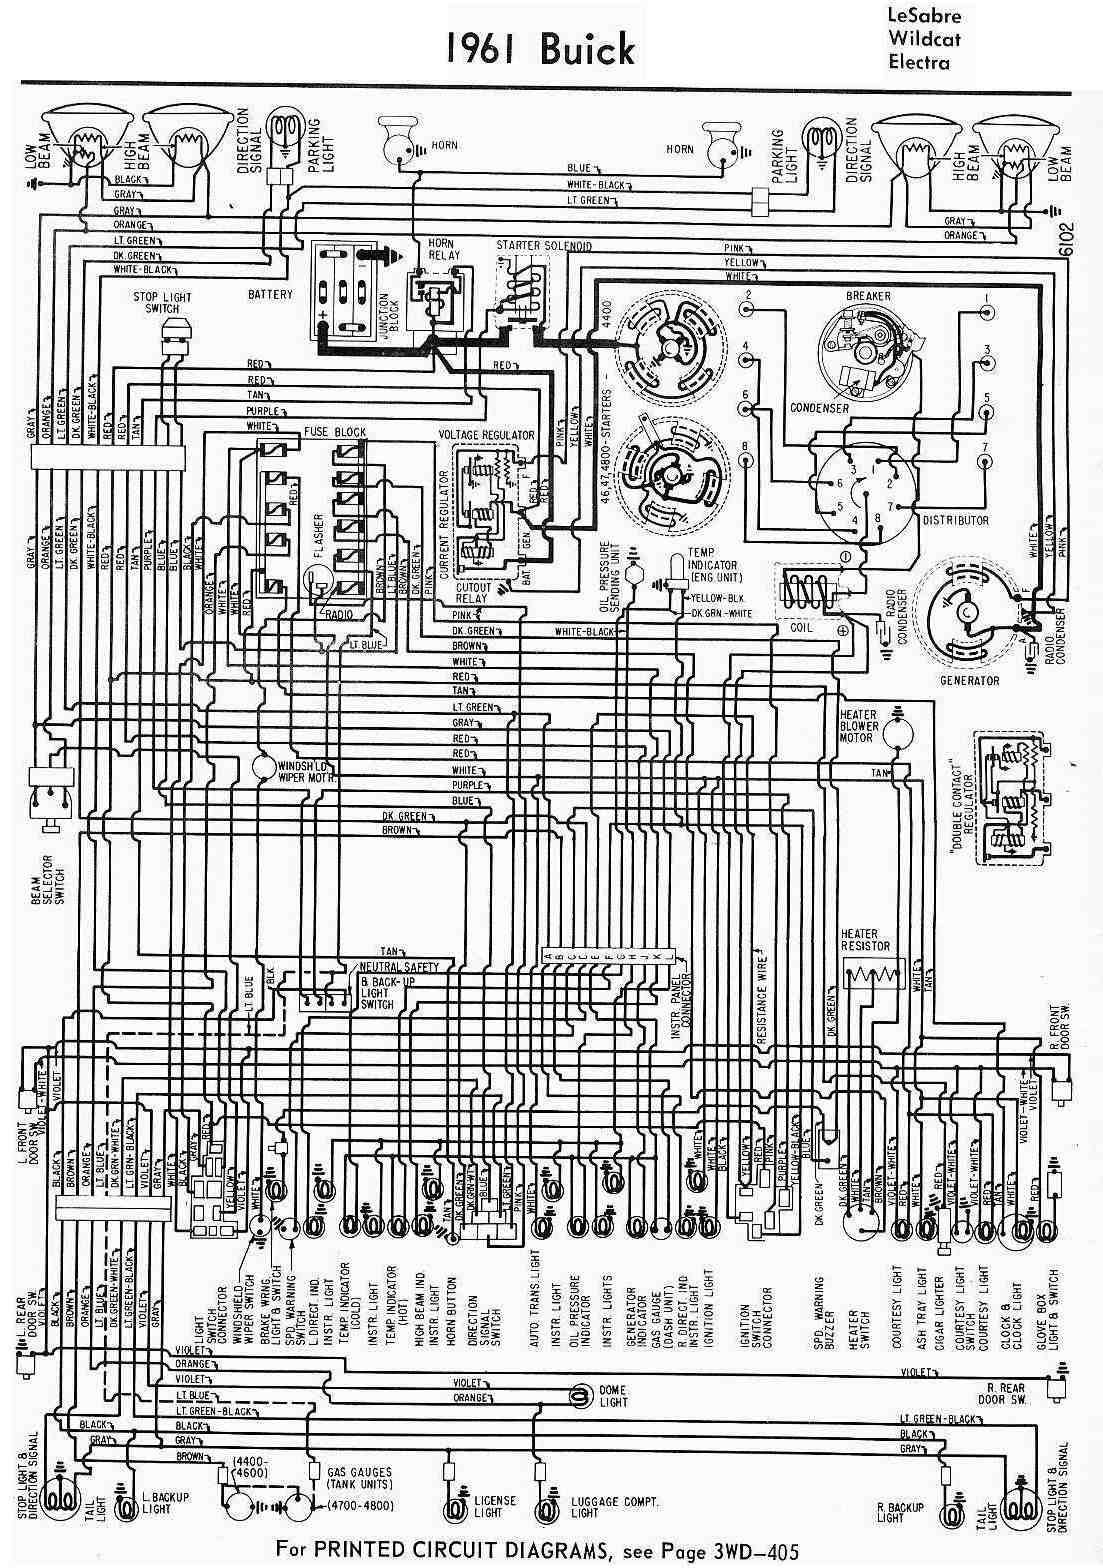 1948 studebaker wiring diagram manual repair engine 1948 studebaker wiring diagram